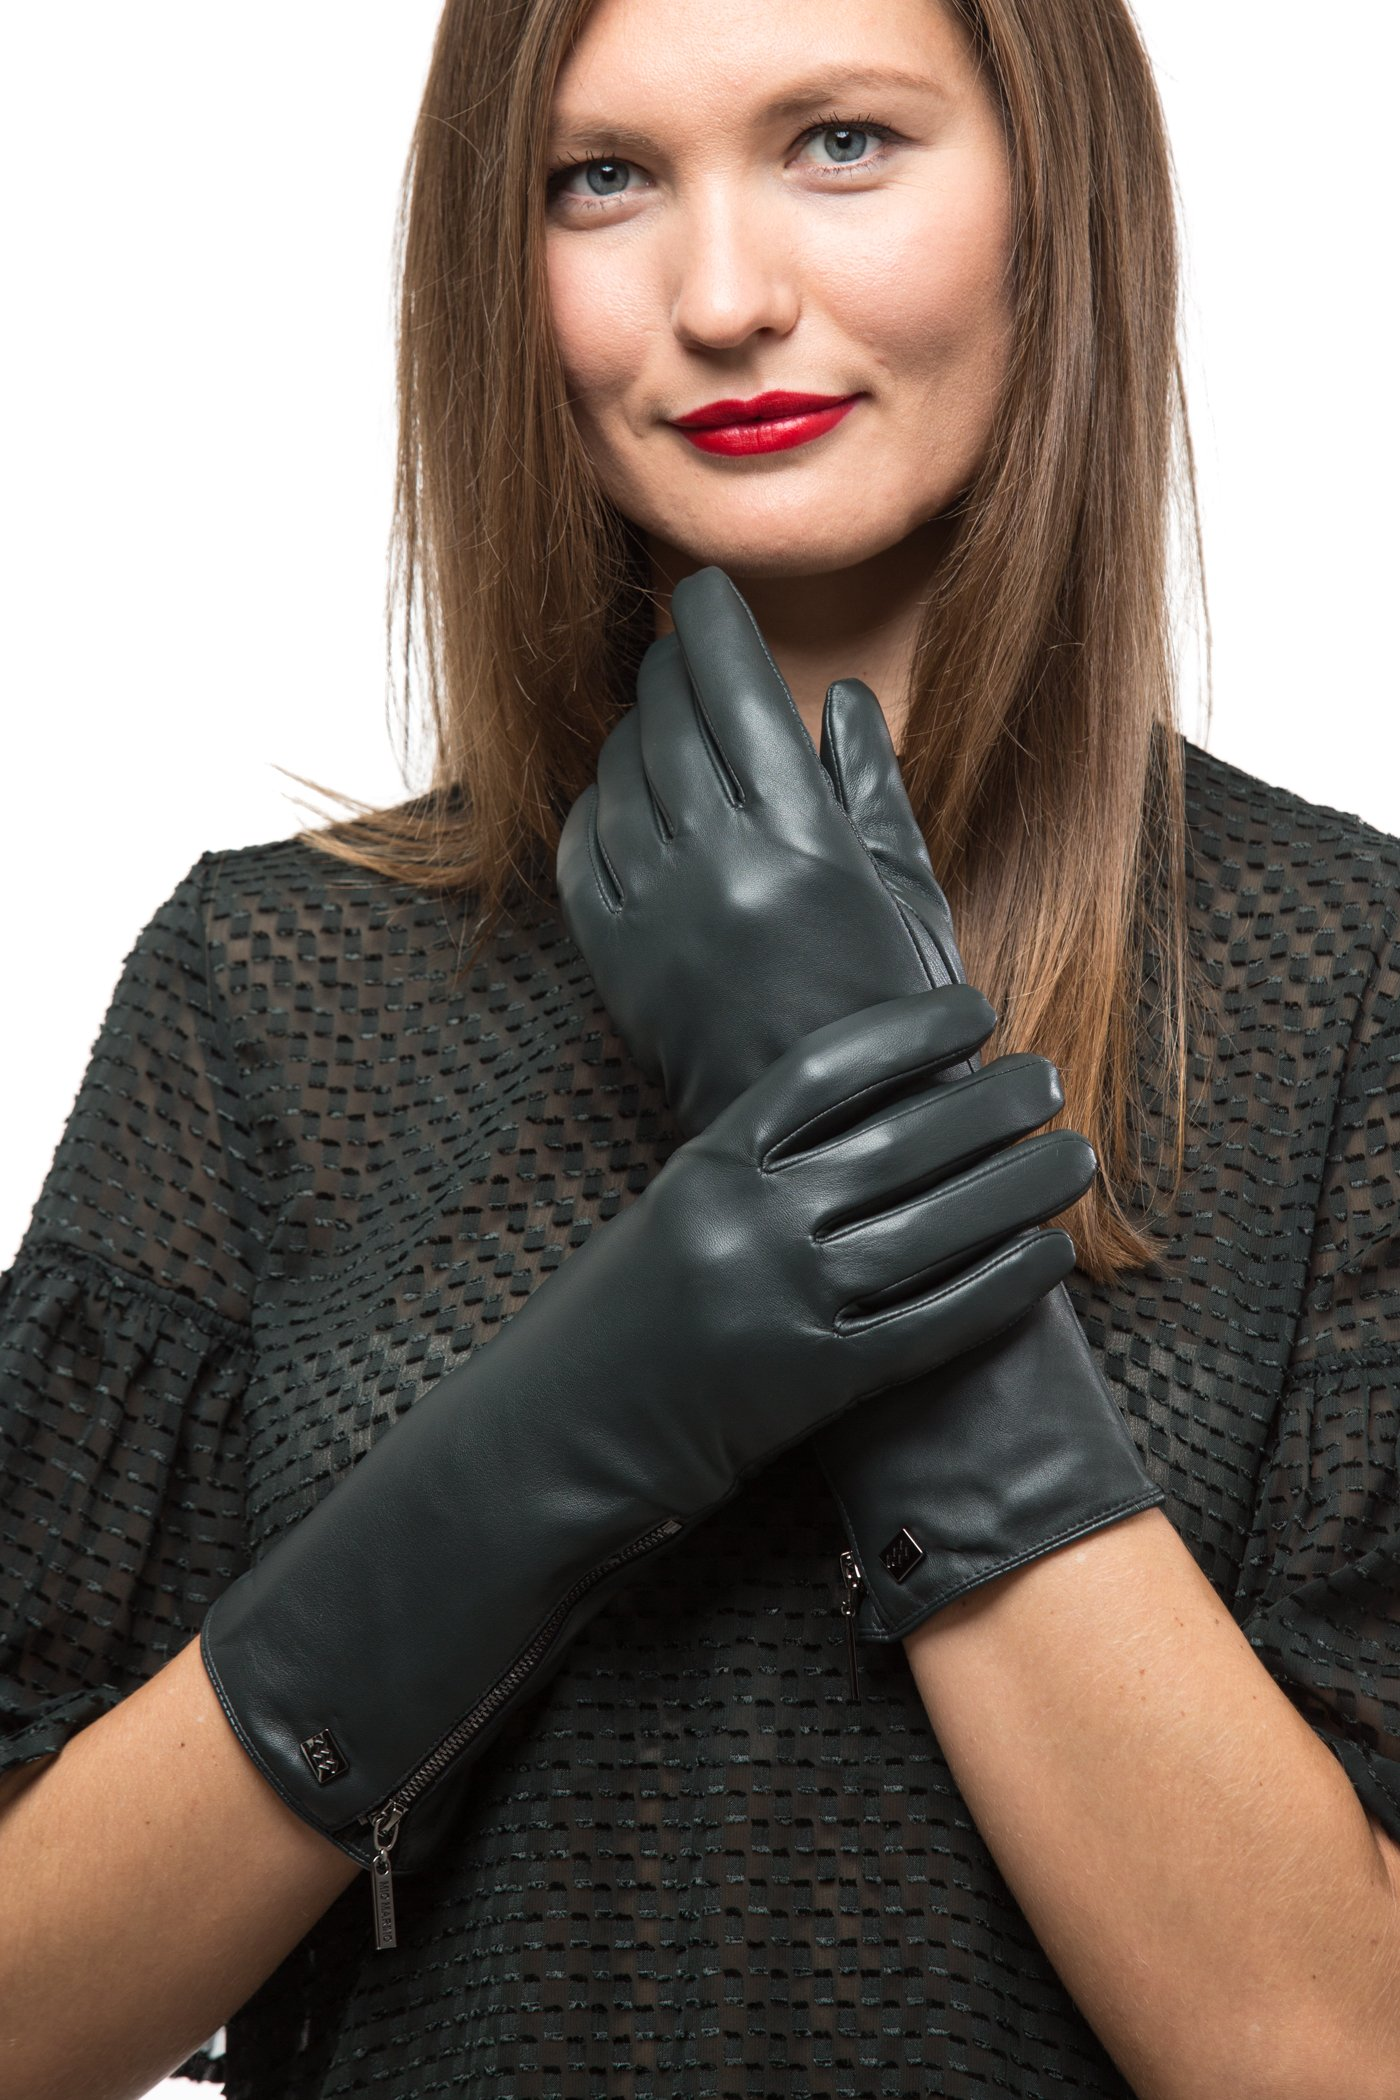 Long Sleeve Leather Zipper Gloves For Women, Touchscreen Cold Weather Long Sleeve Gloves - With Thinsulate Liner - Olive Green - Small